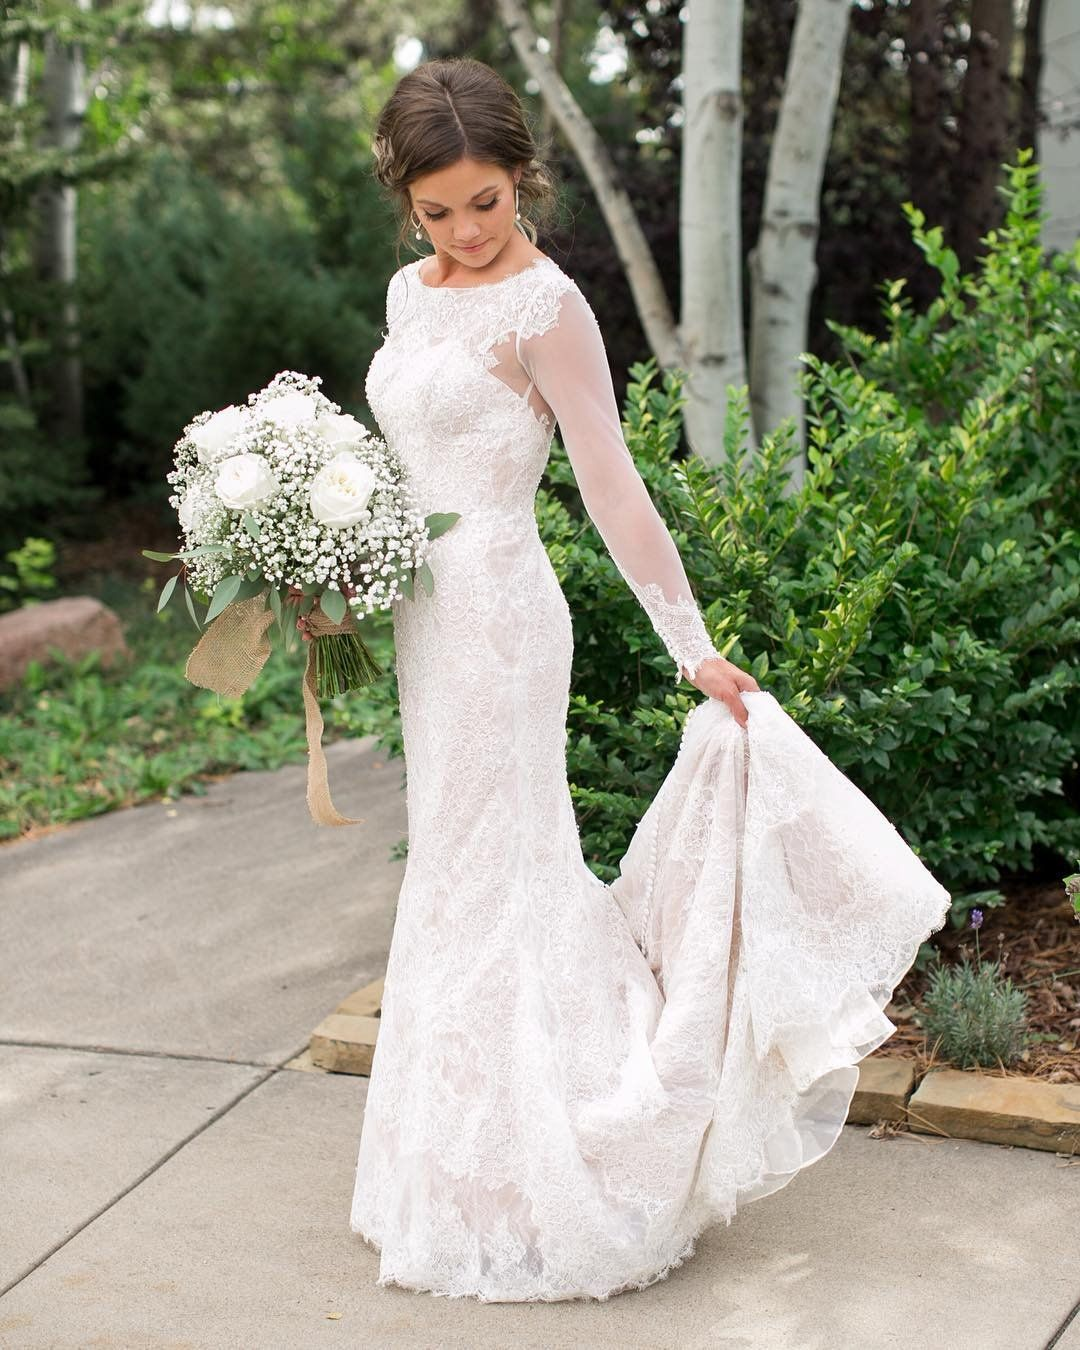 60ca065ecd9 David s Bridal bride Carlee in a long sleeve lace and illusion sheath  wedding dress by Oleg Cassini